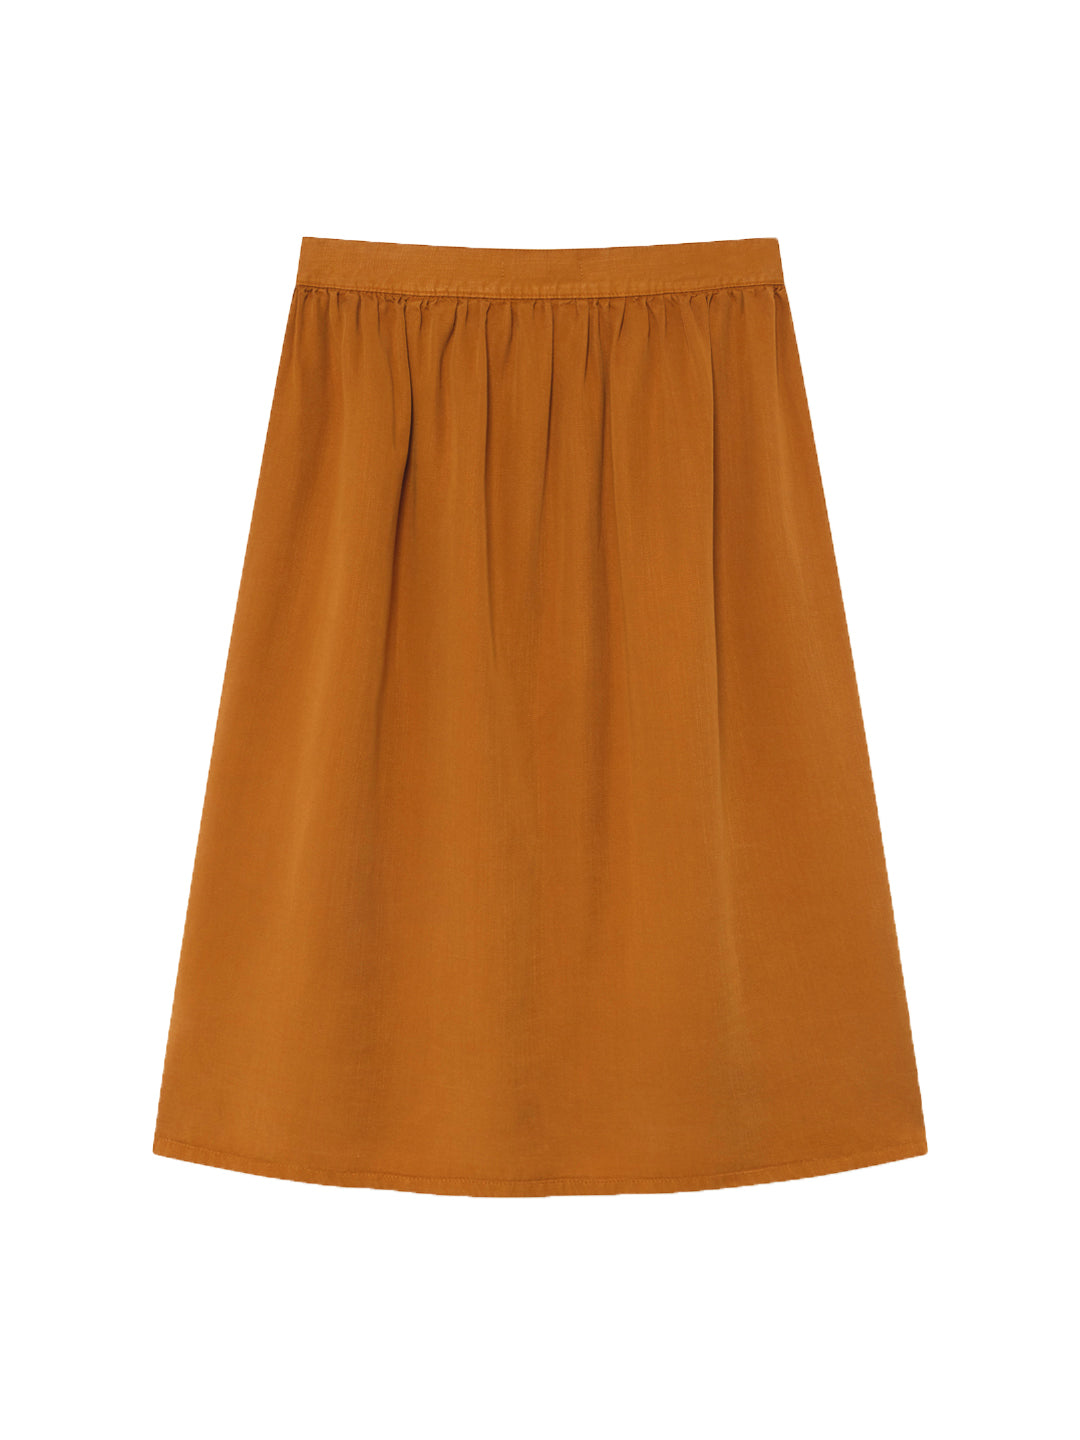 TWOTHIRDS Womens Skirt: Ma Wan - Dark Mustard back